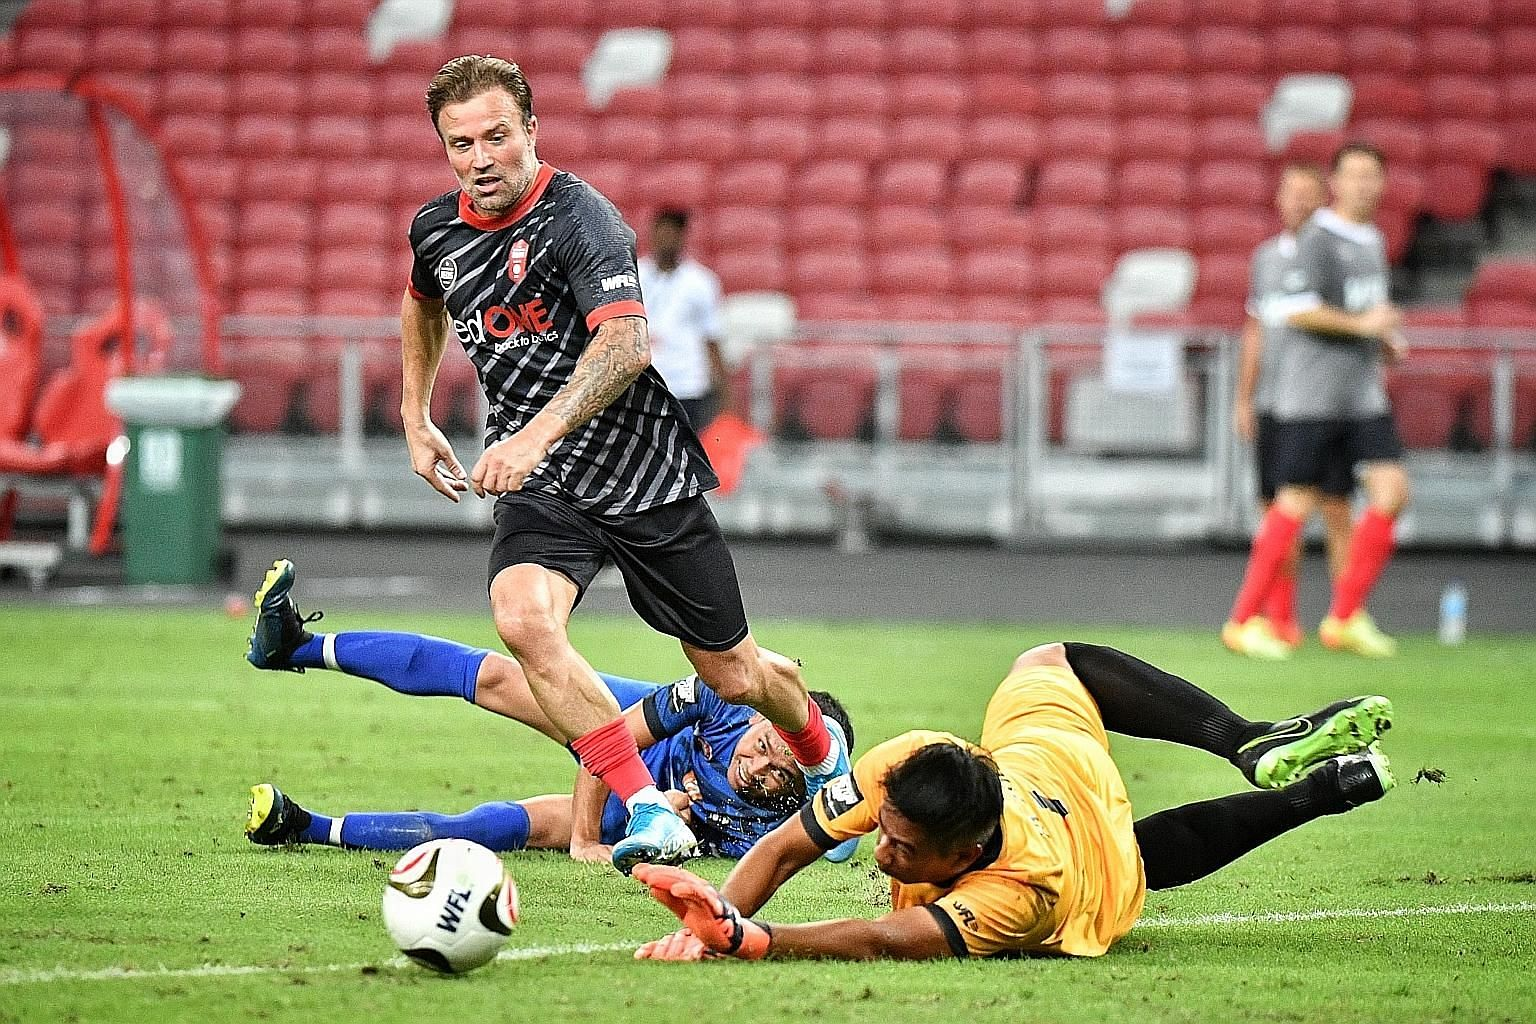 Manchester Reds' Michael Gray beating the Singapore Reds' defence to score in their 2-0 win which set up the final against Liverpool Reds.